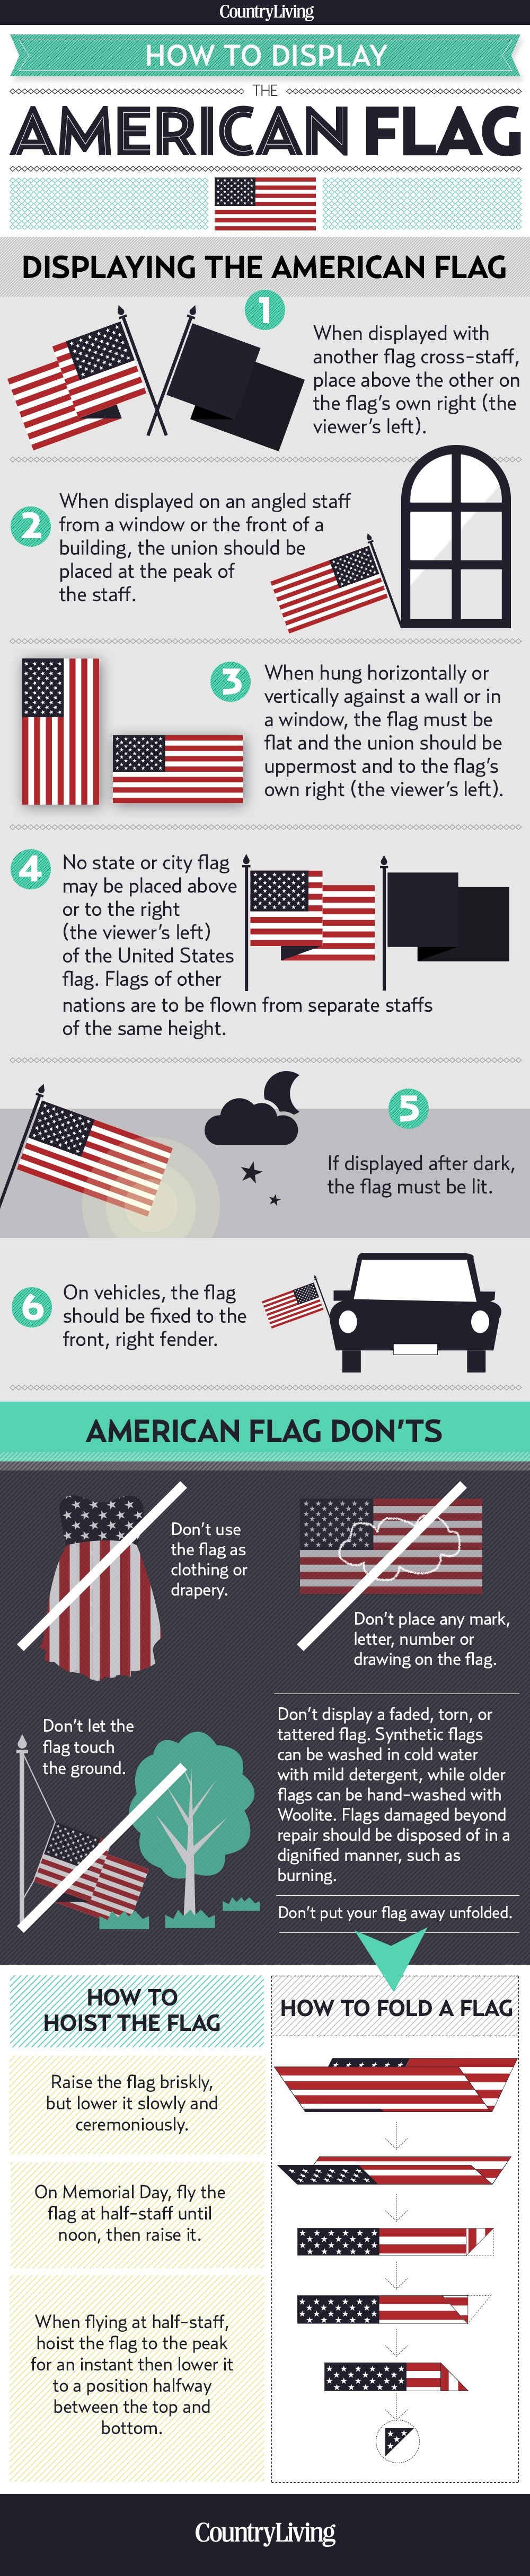 Do You Know How To Properly Display The American Flag Displaying The American Flag American Flag Etiquette Flag Etiquette